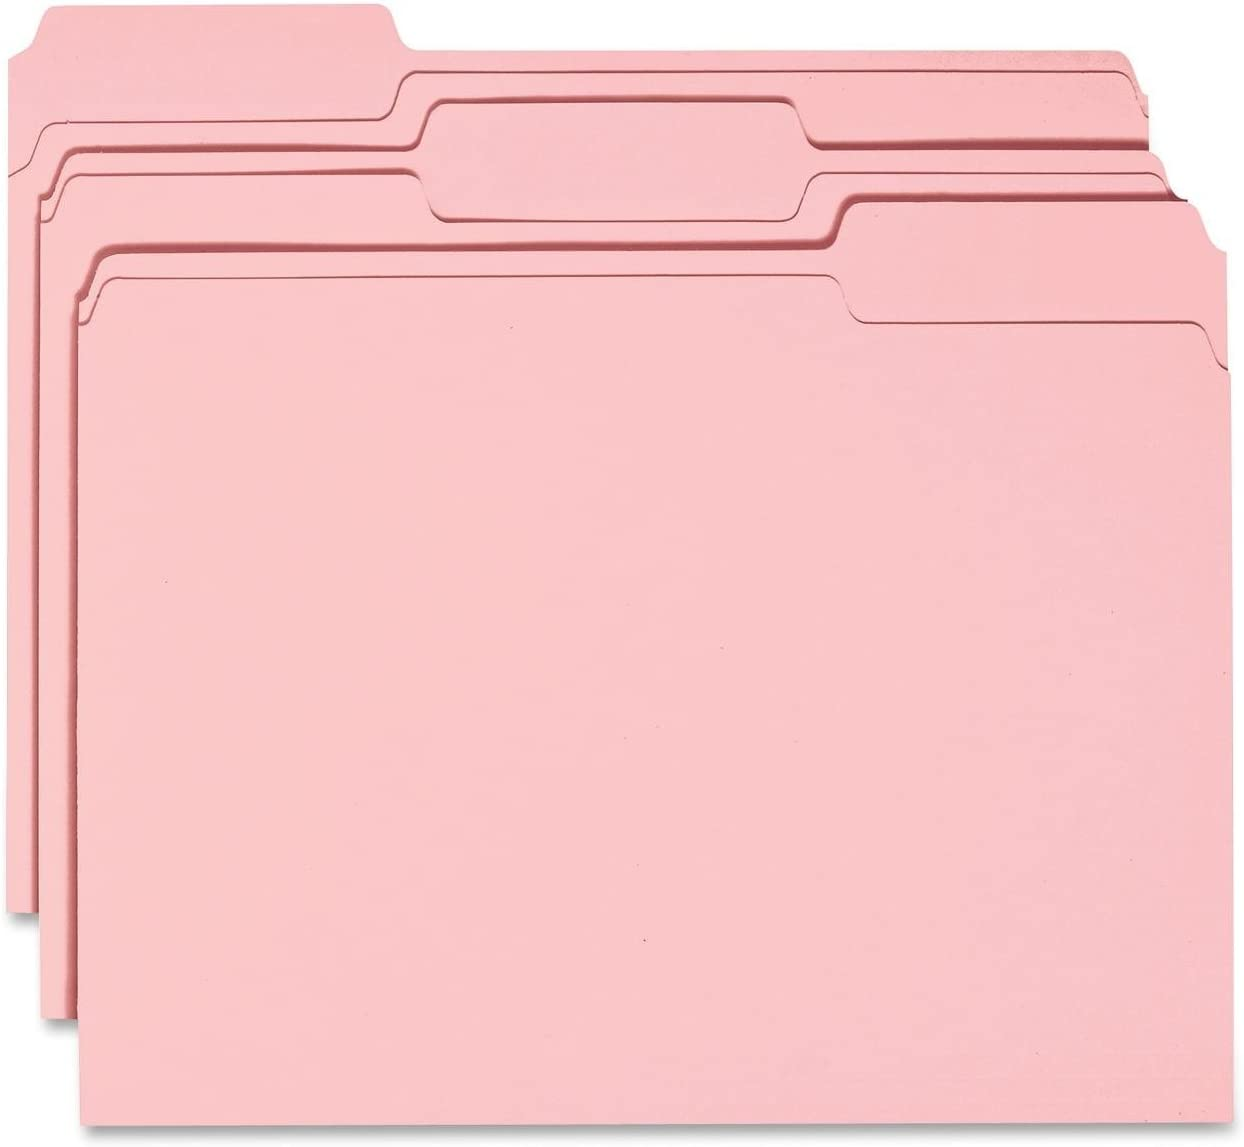 Smead File Folder, 1/3-Cut Tab, Letter Size, Pink, 100 per Box (12643)